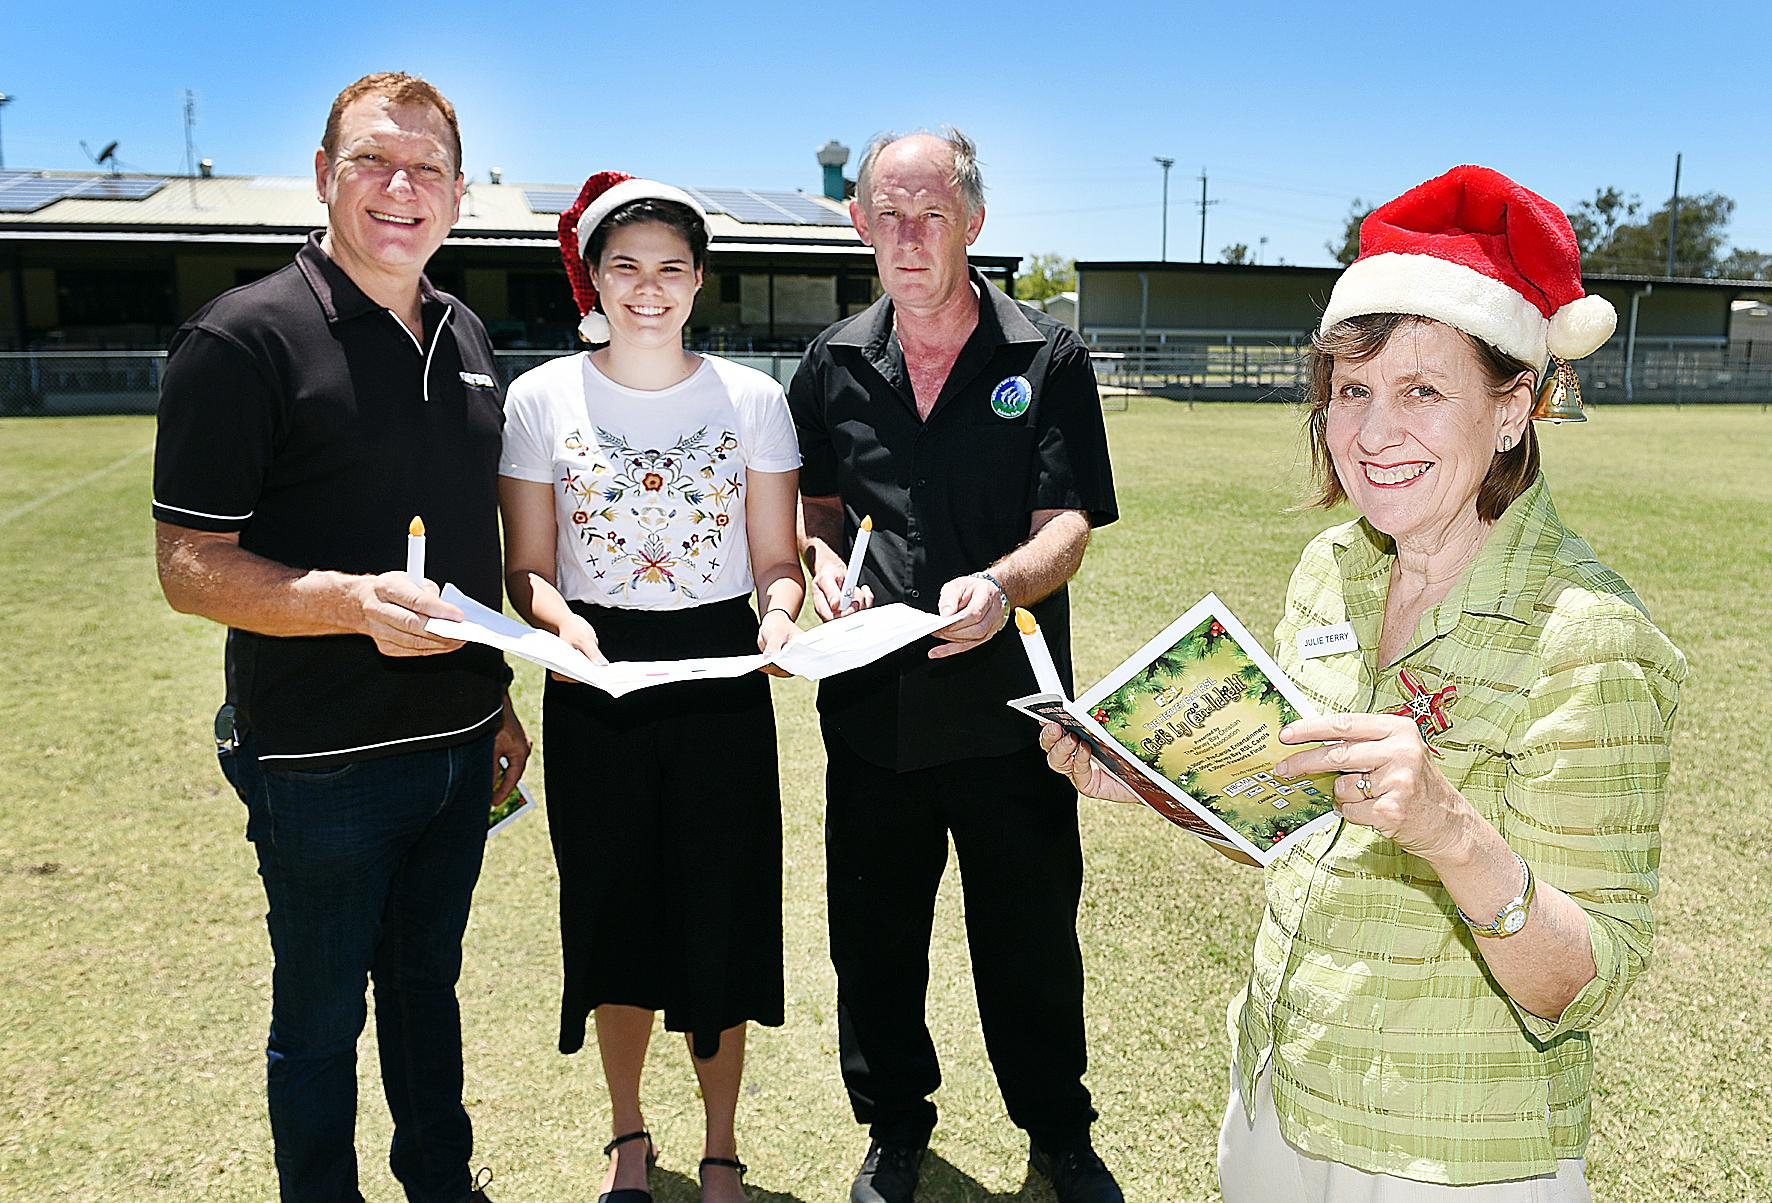 SING OUT LOUD: Pastor Ross Davie, Kerri Hetherington, Hervey Bay Sports Club manager Chris Bleakley and organiser Pastor Julie Terry, are working hard to ensure this year's RSL Carols by Candlelight is a great success in the new location.